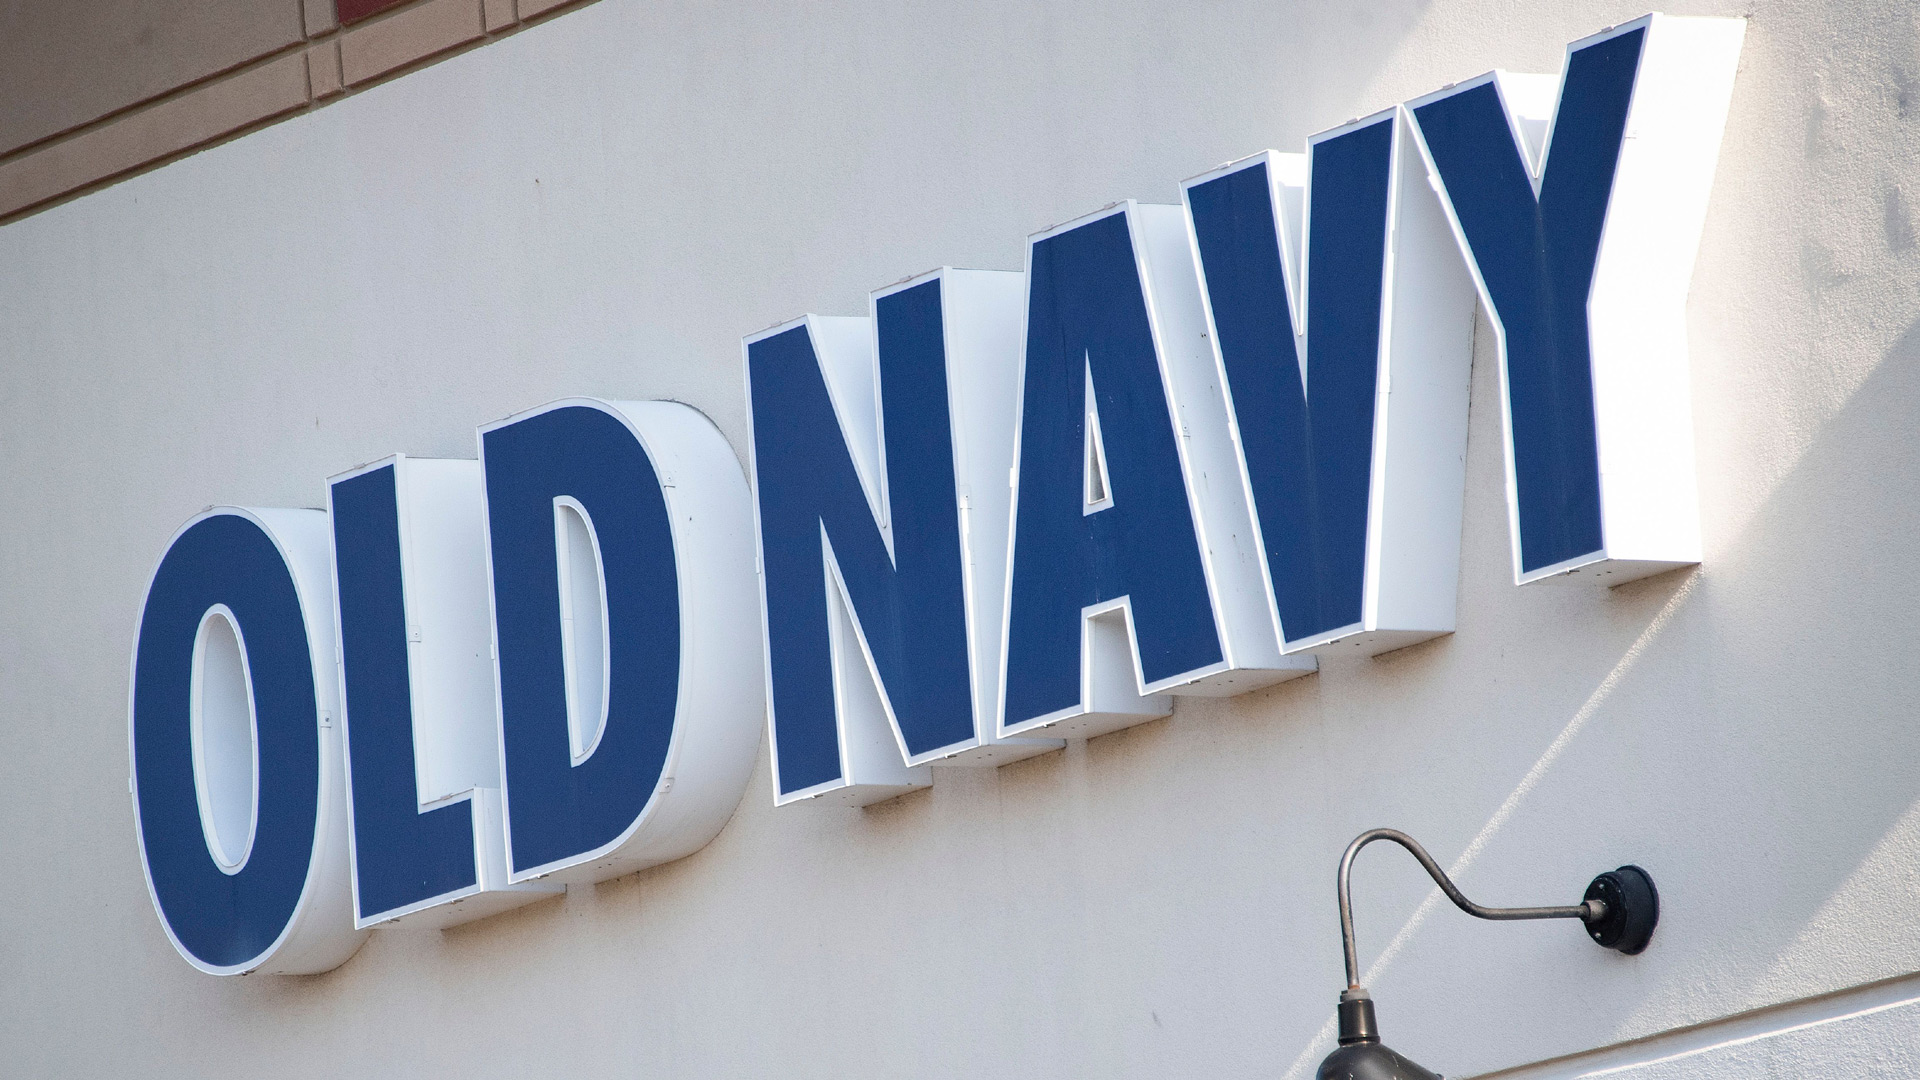 Old Navy clothing store. (Credit: JIM WATSON/AFP via Getty Images)